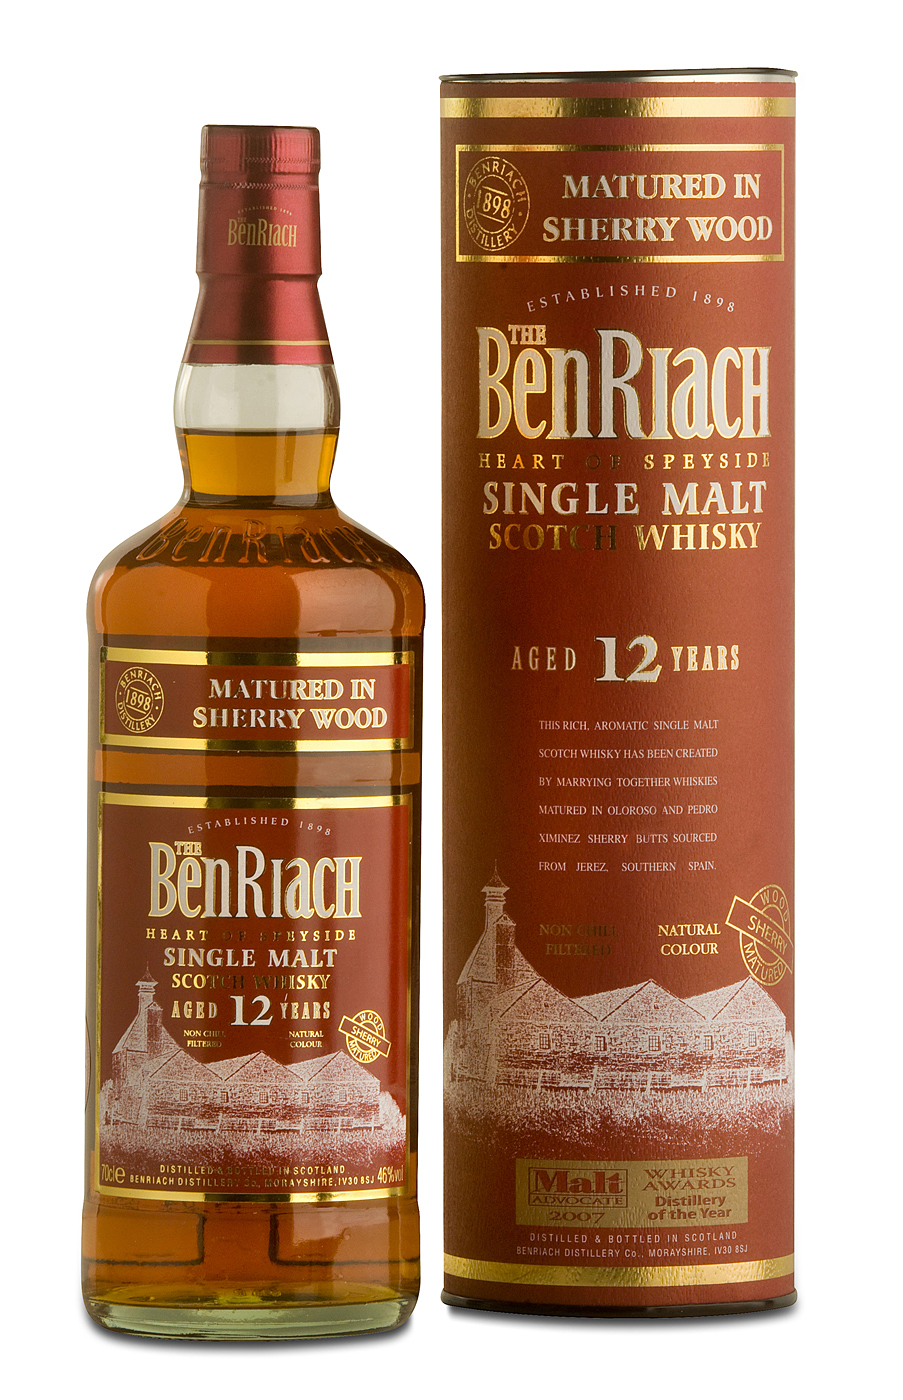 BenRiach 12y Sherry Wood wint award in Speyside